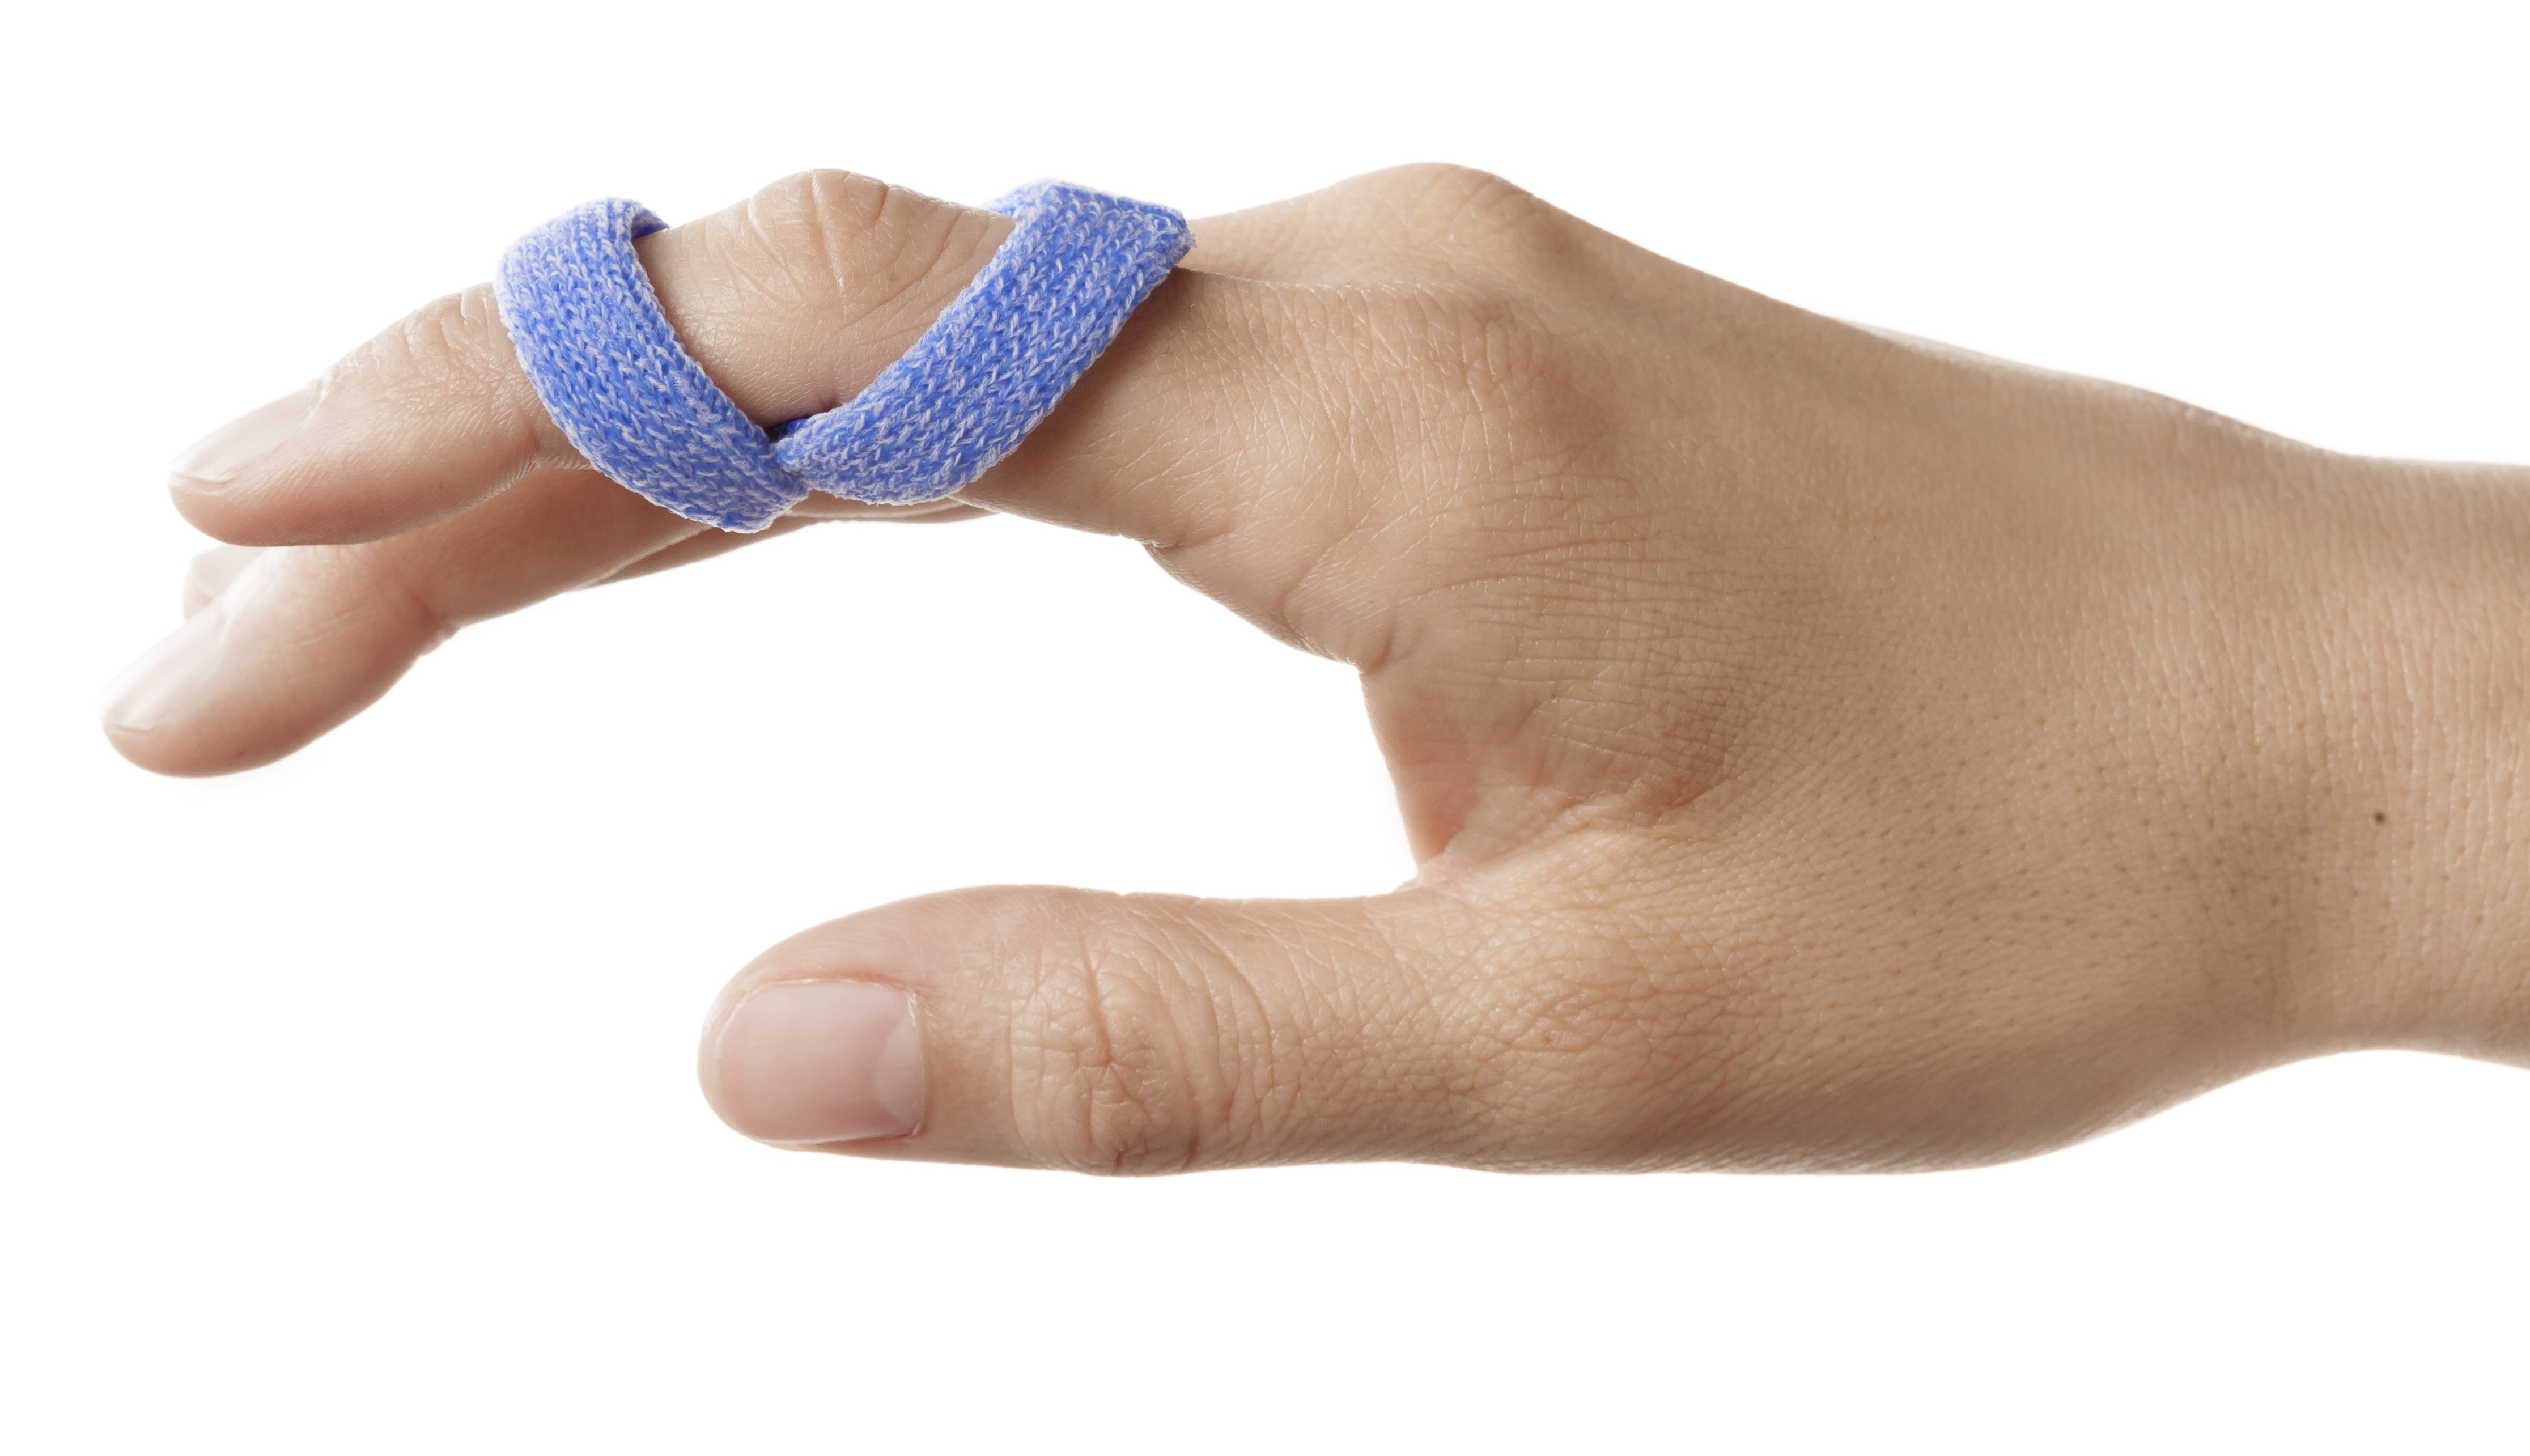 Joint hypermobility managed with Orthoses